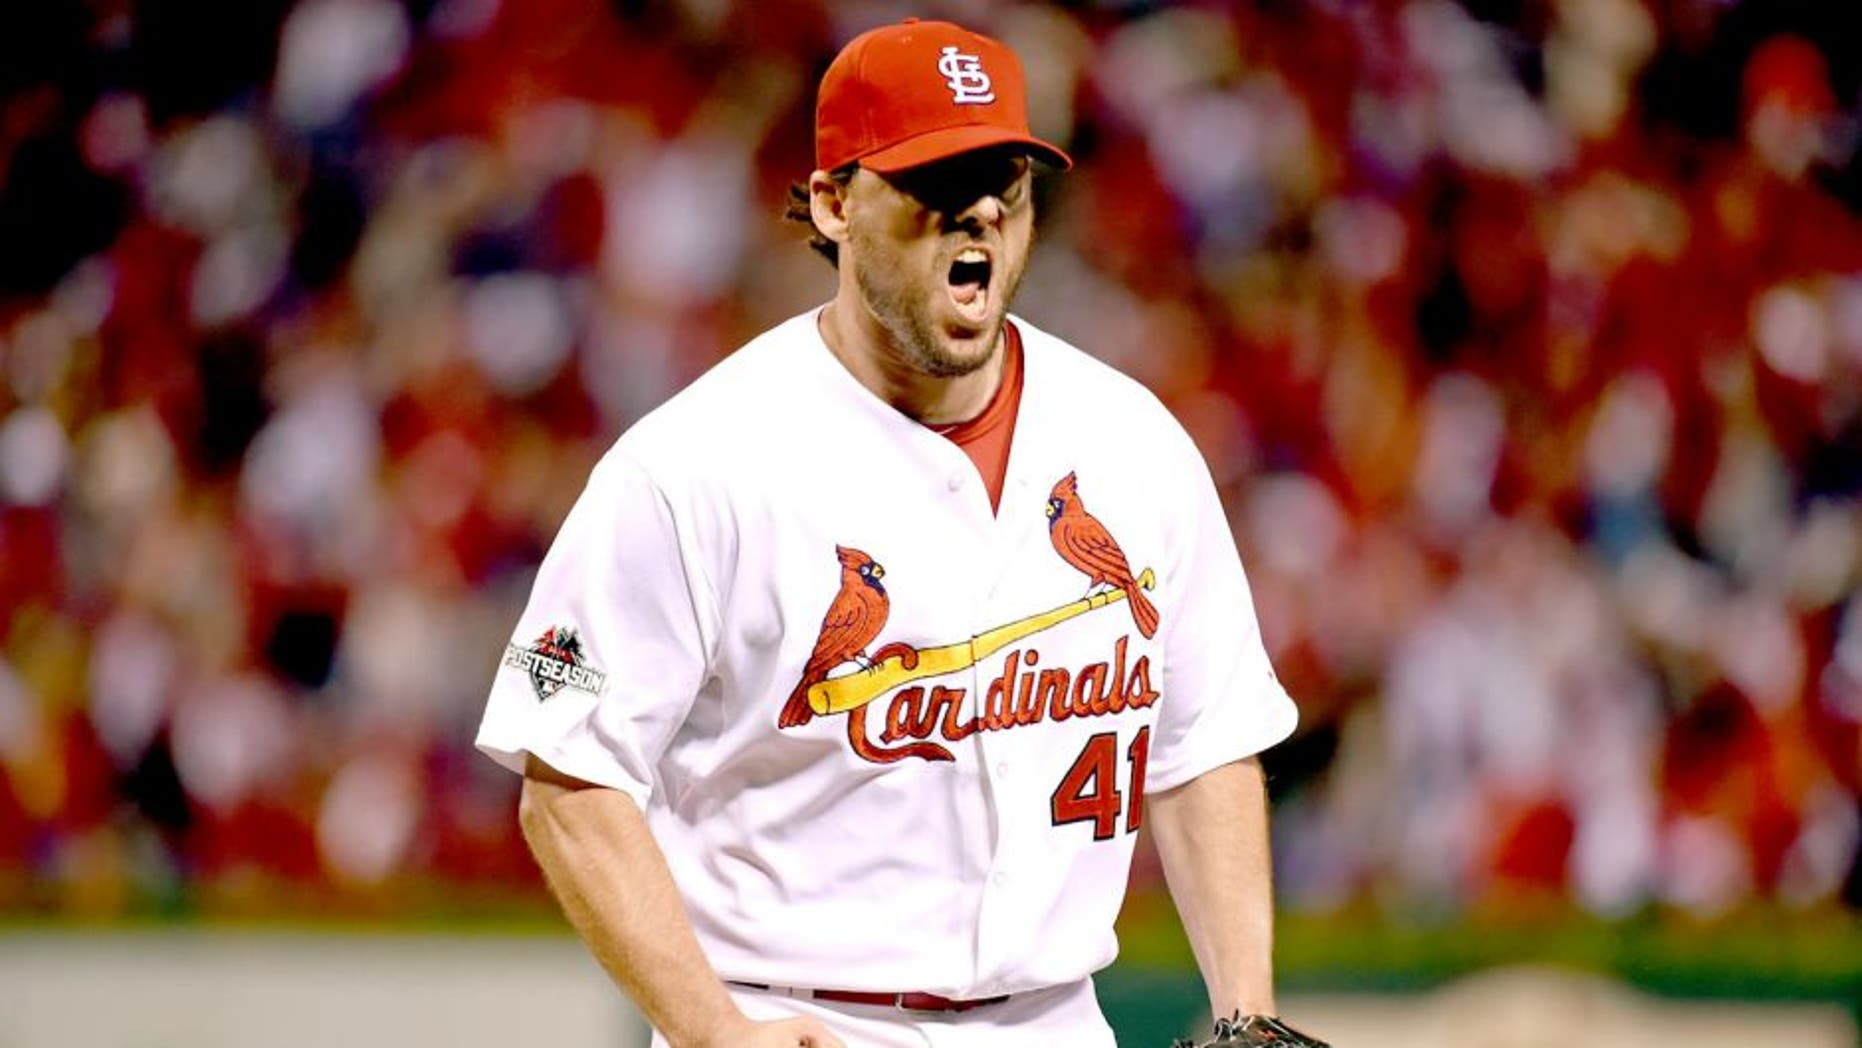 ST. LOUIS, MO - OCTOBER 9: John Lackey #41 of the St. Louis Cardinals reacts during Game 1 of the NLDS against the Chicago Cubs at Busch Stadium on Friday, October 9, 2015 in St. Louis, Missouri. (Photo by LG Patterson/MLB Photos via Getty Images)